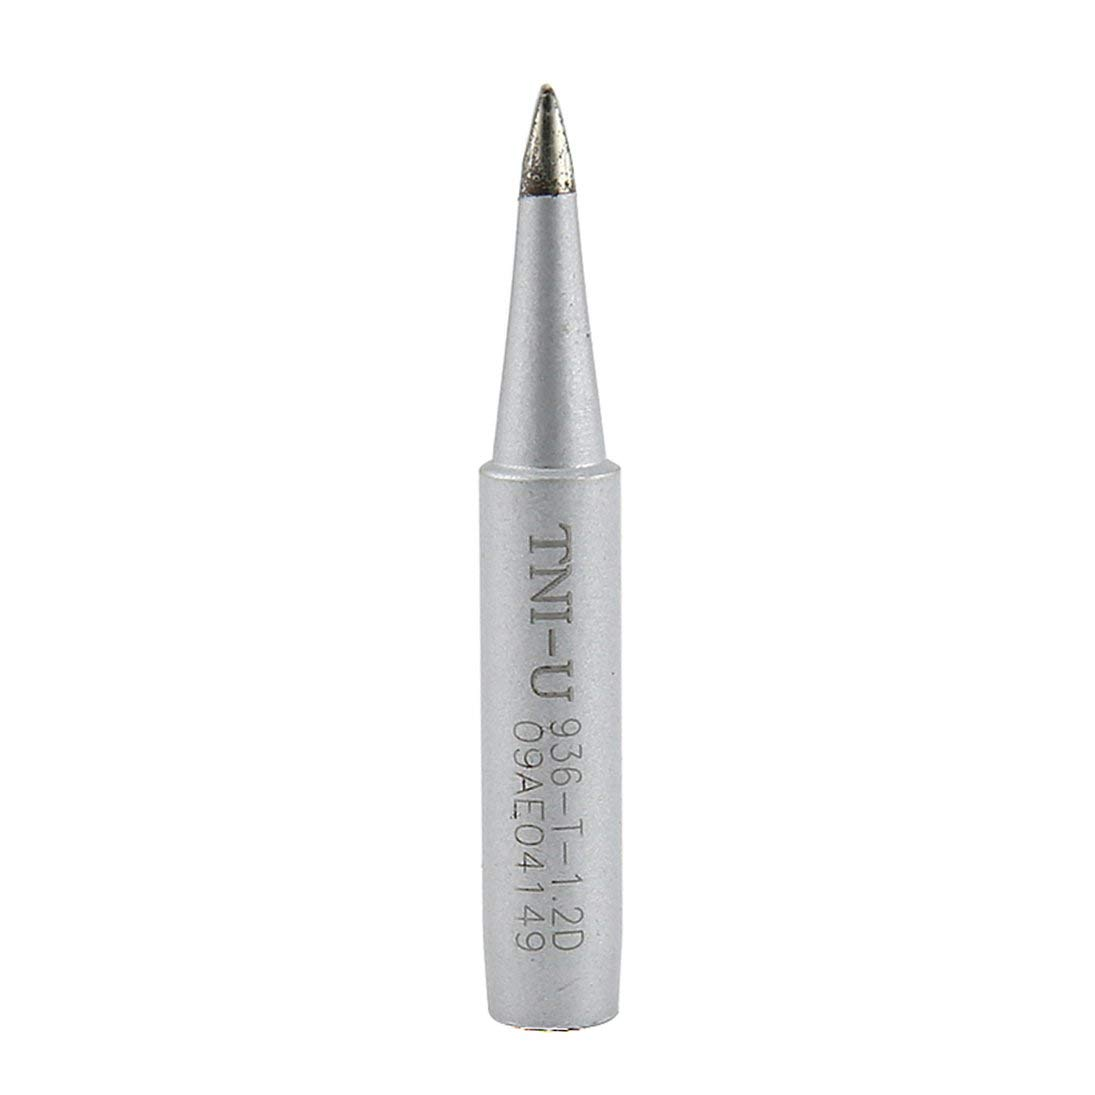 Baynne 1 Pcs Solder Soldering Iron Tip Welding Iron Head Tool Replacement for 936 Rework Station